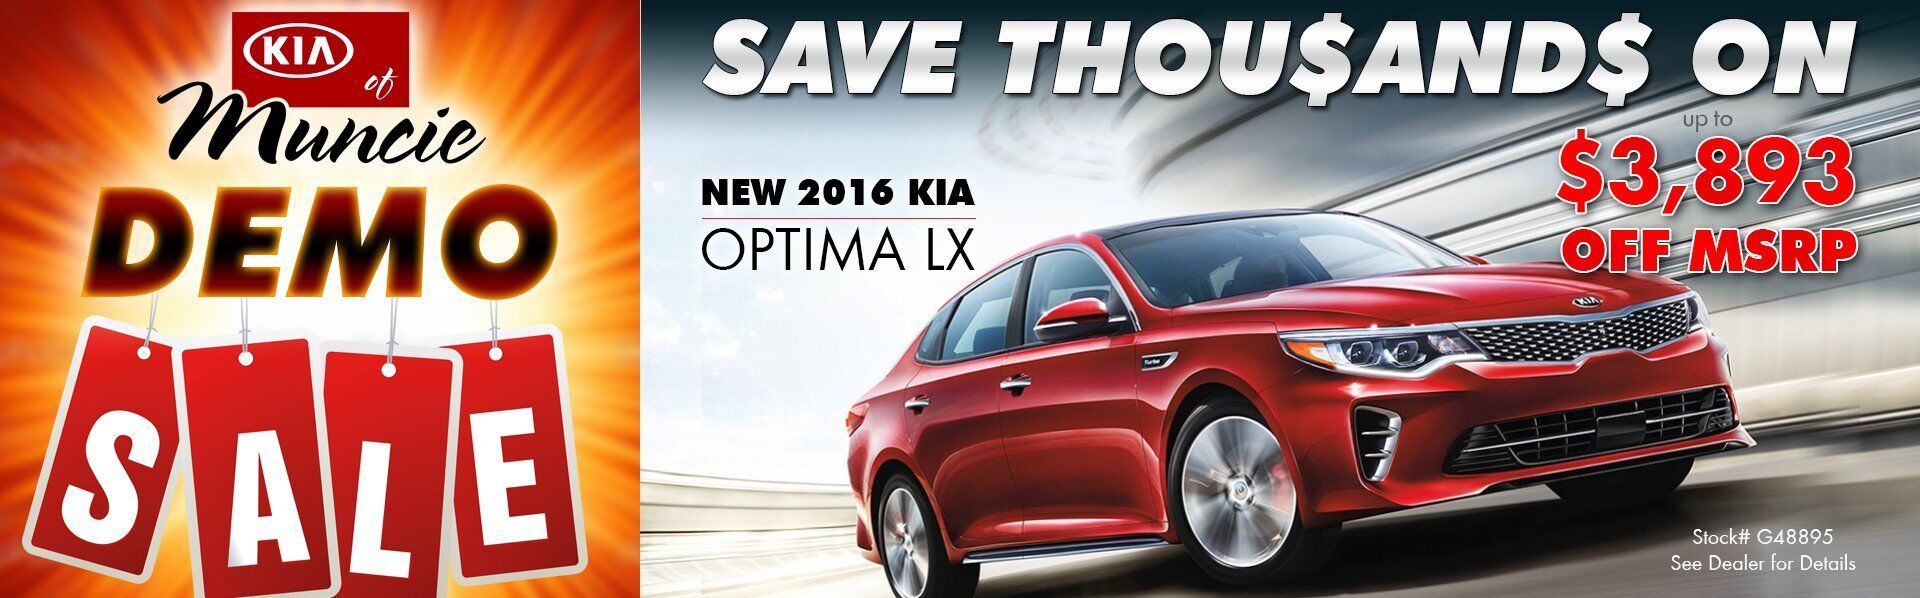 DEMO SALE - 2016 Optima